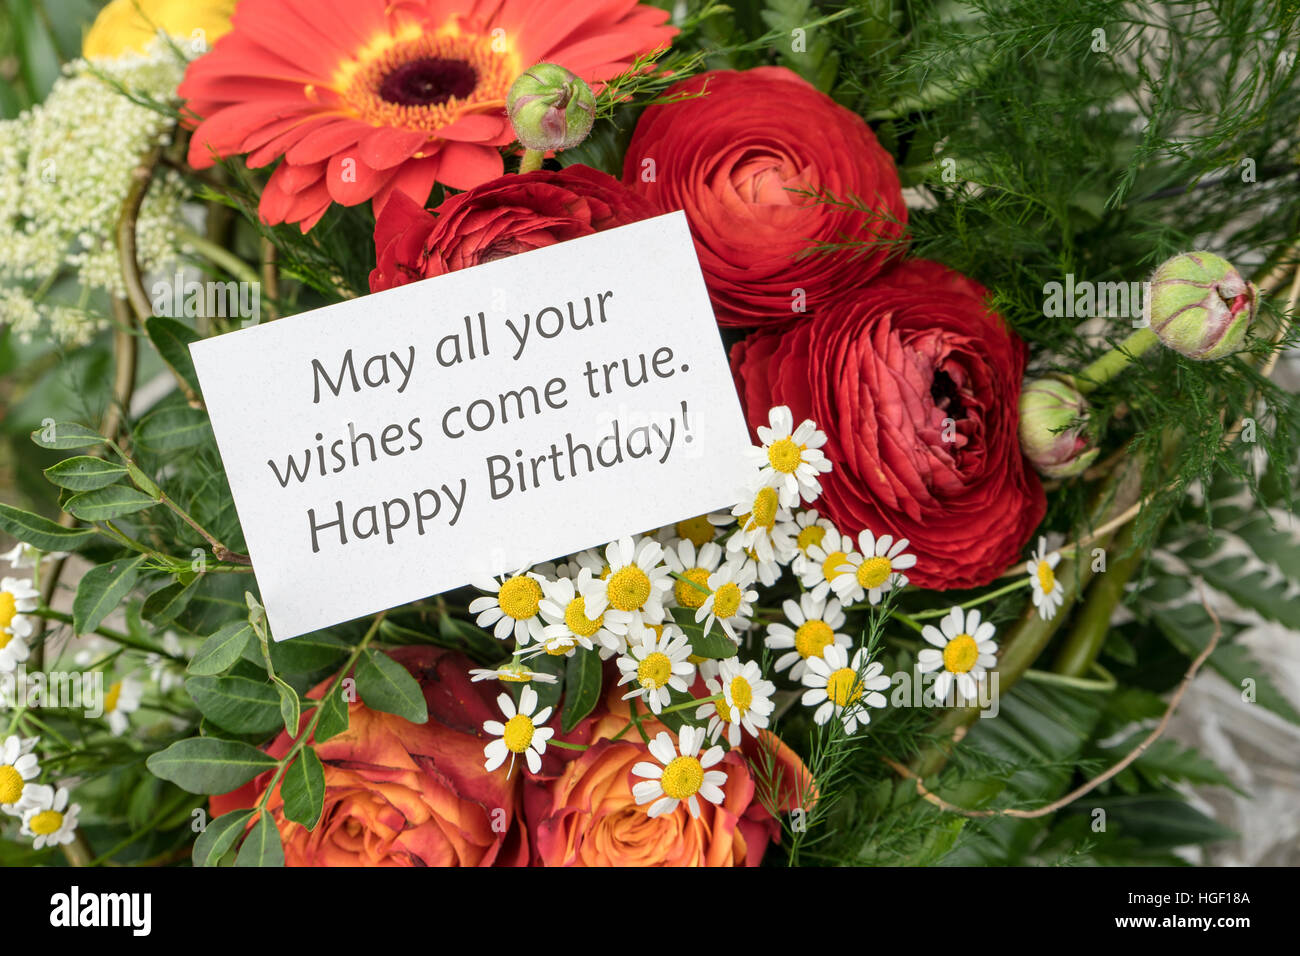 English birthday greetings stock photos english birthday greetings english greeting card birthday with red flowers stock image m4hsunfo